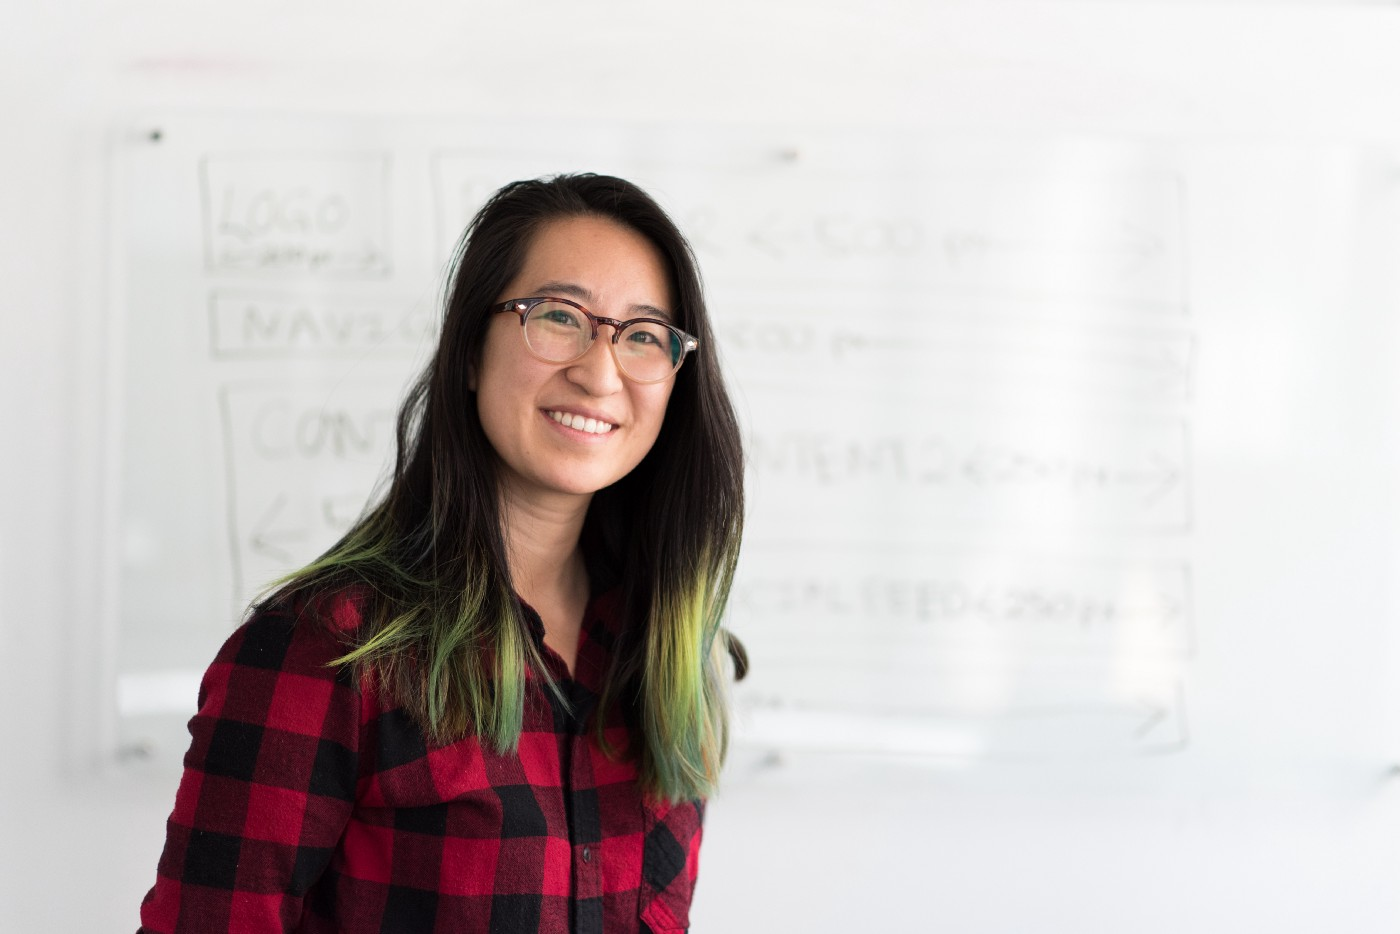 Smiling woman with long, green-tipped dark hair and horn rim glasses, standing in front of a white board